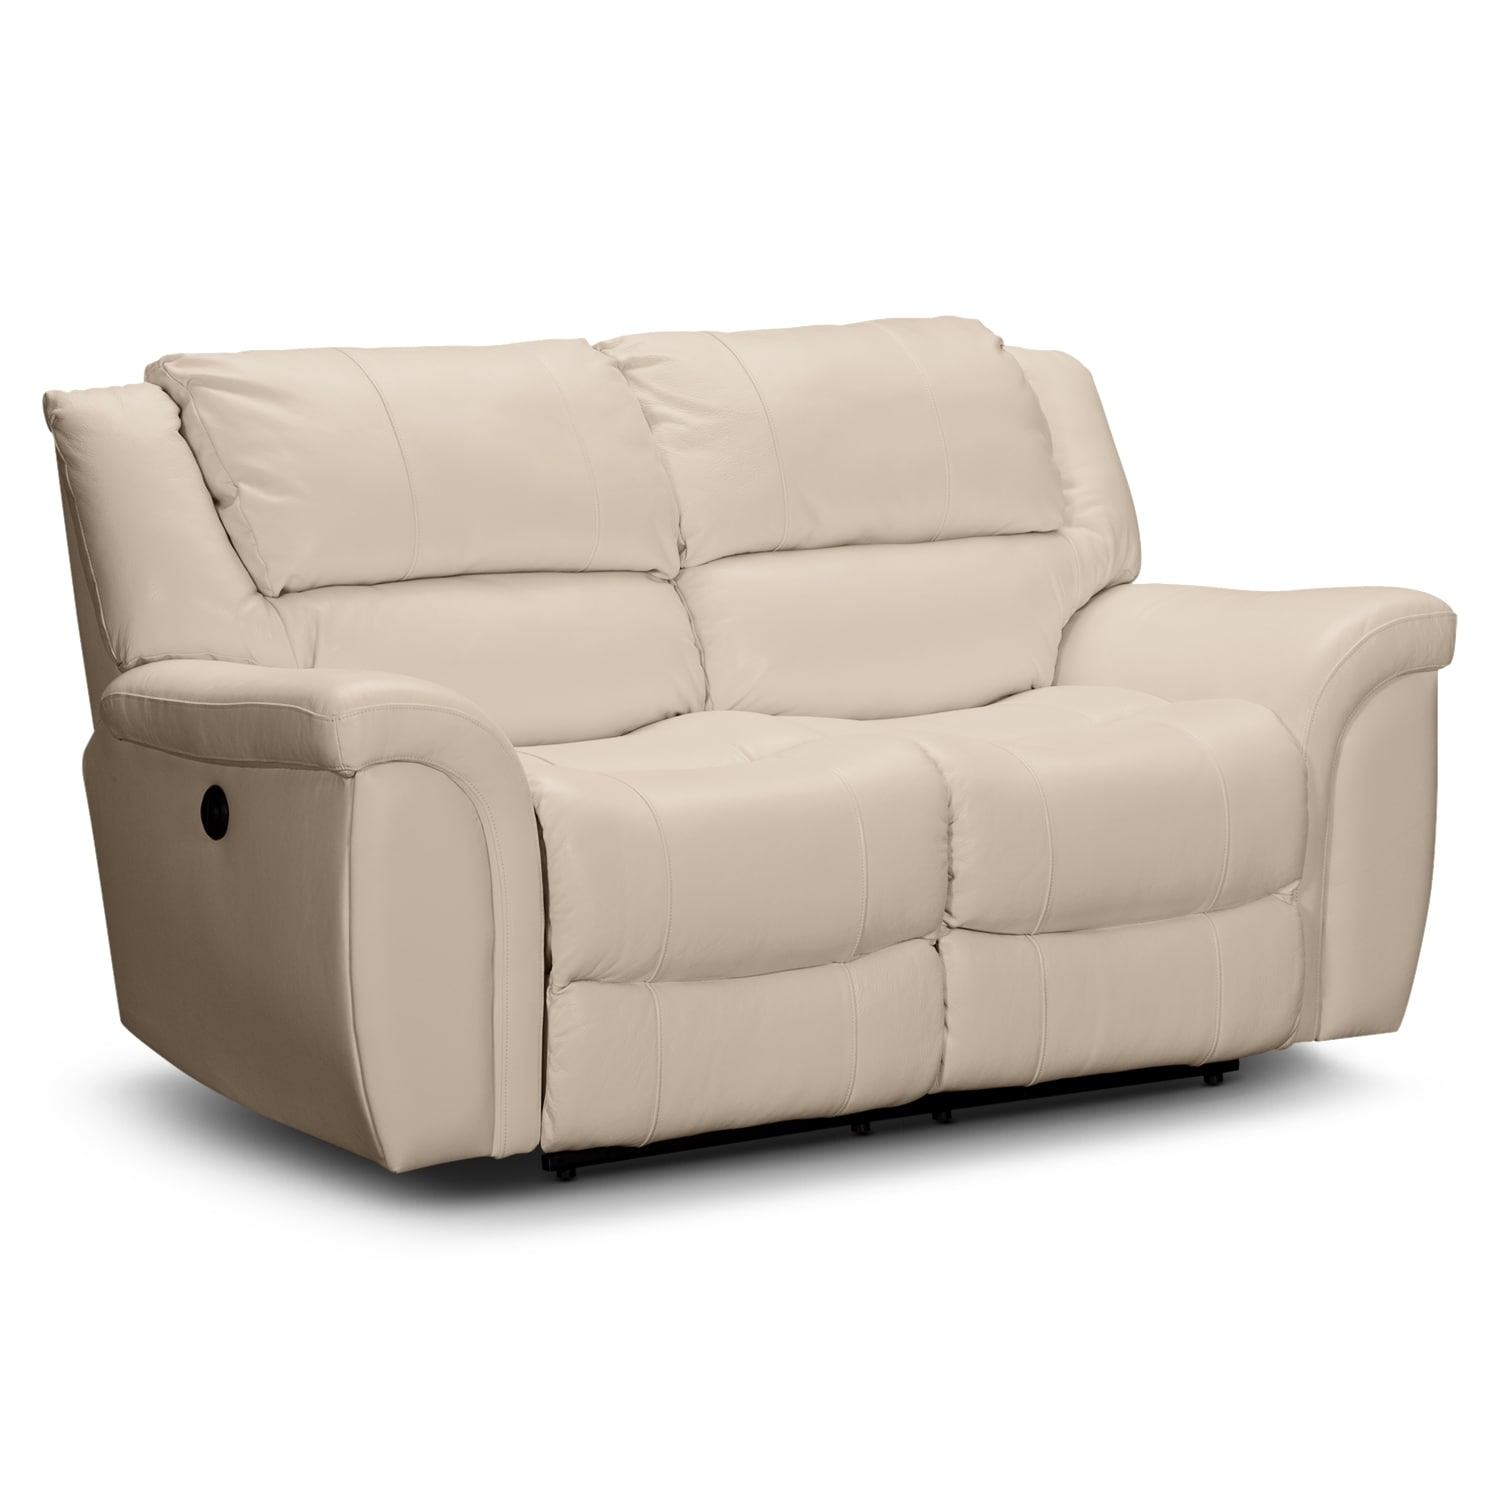 Furnishings for every room online and store furniture sales value city furniture Leather sofa and loveseat recliner